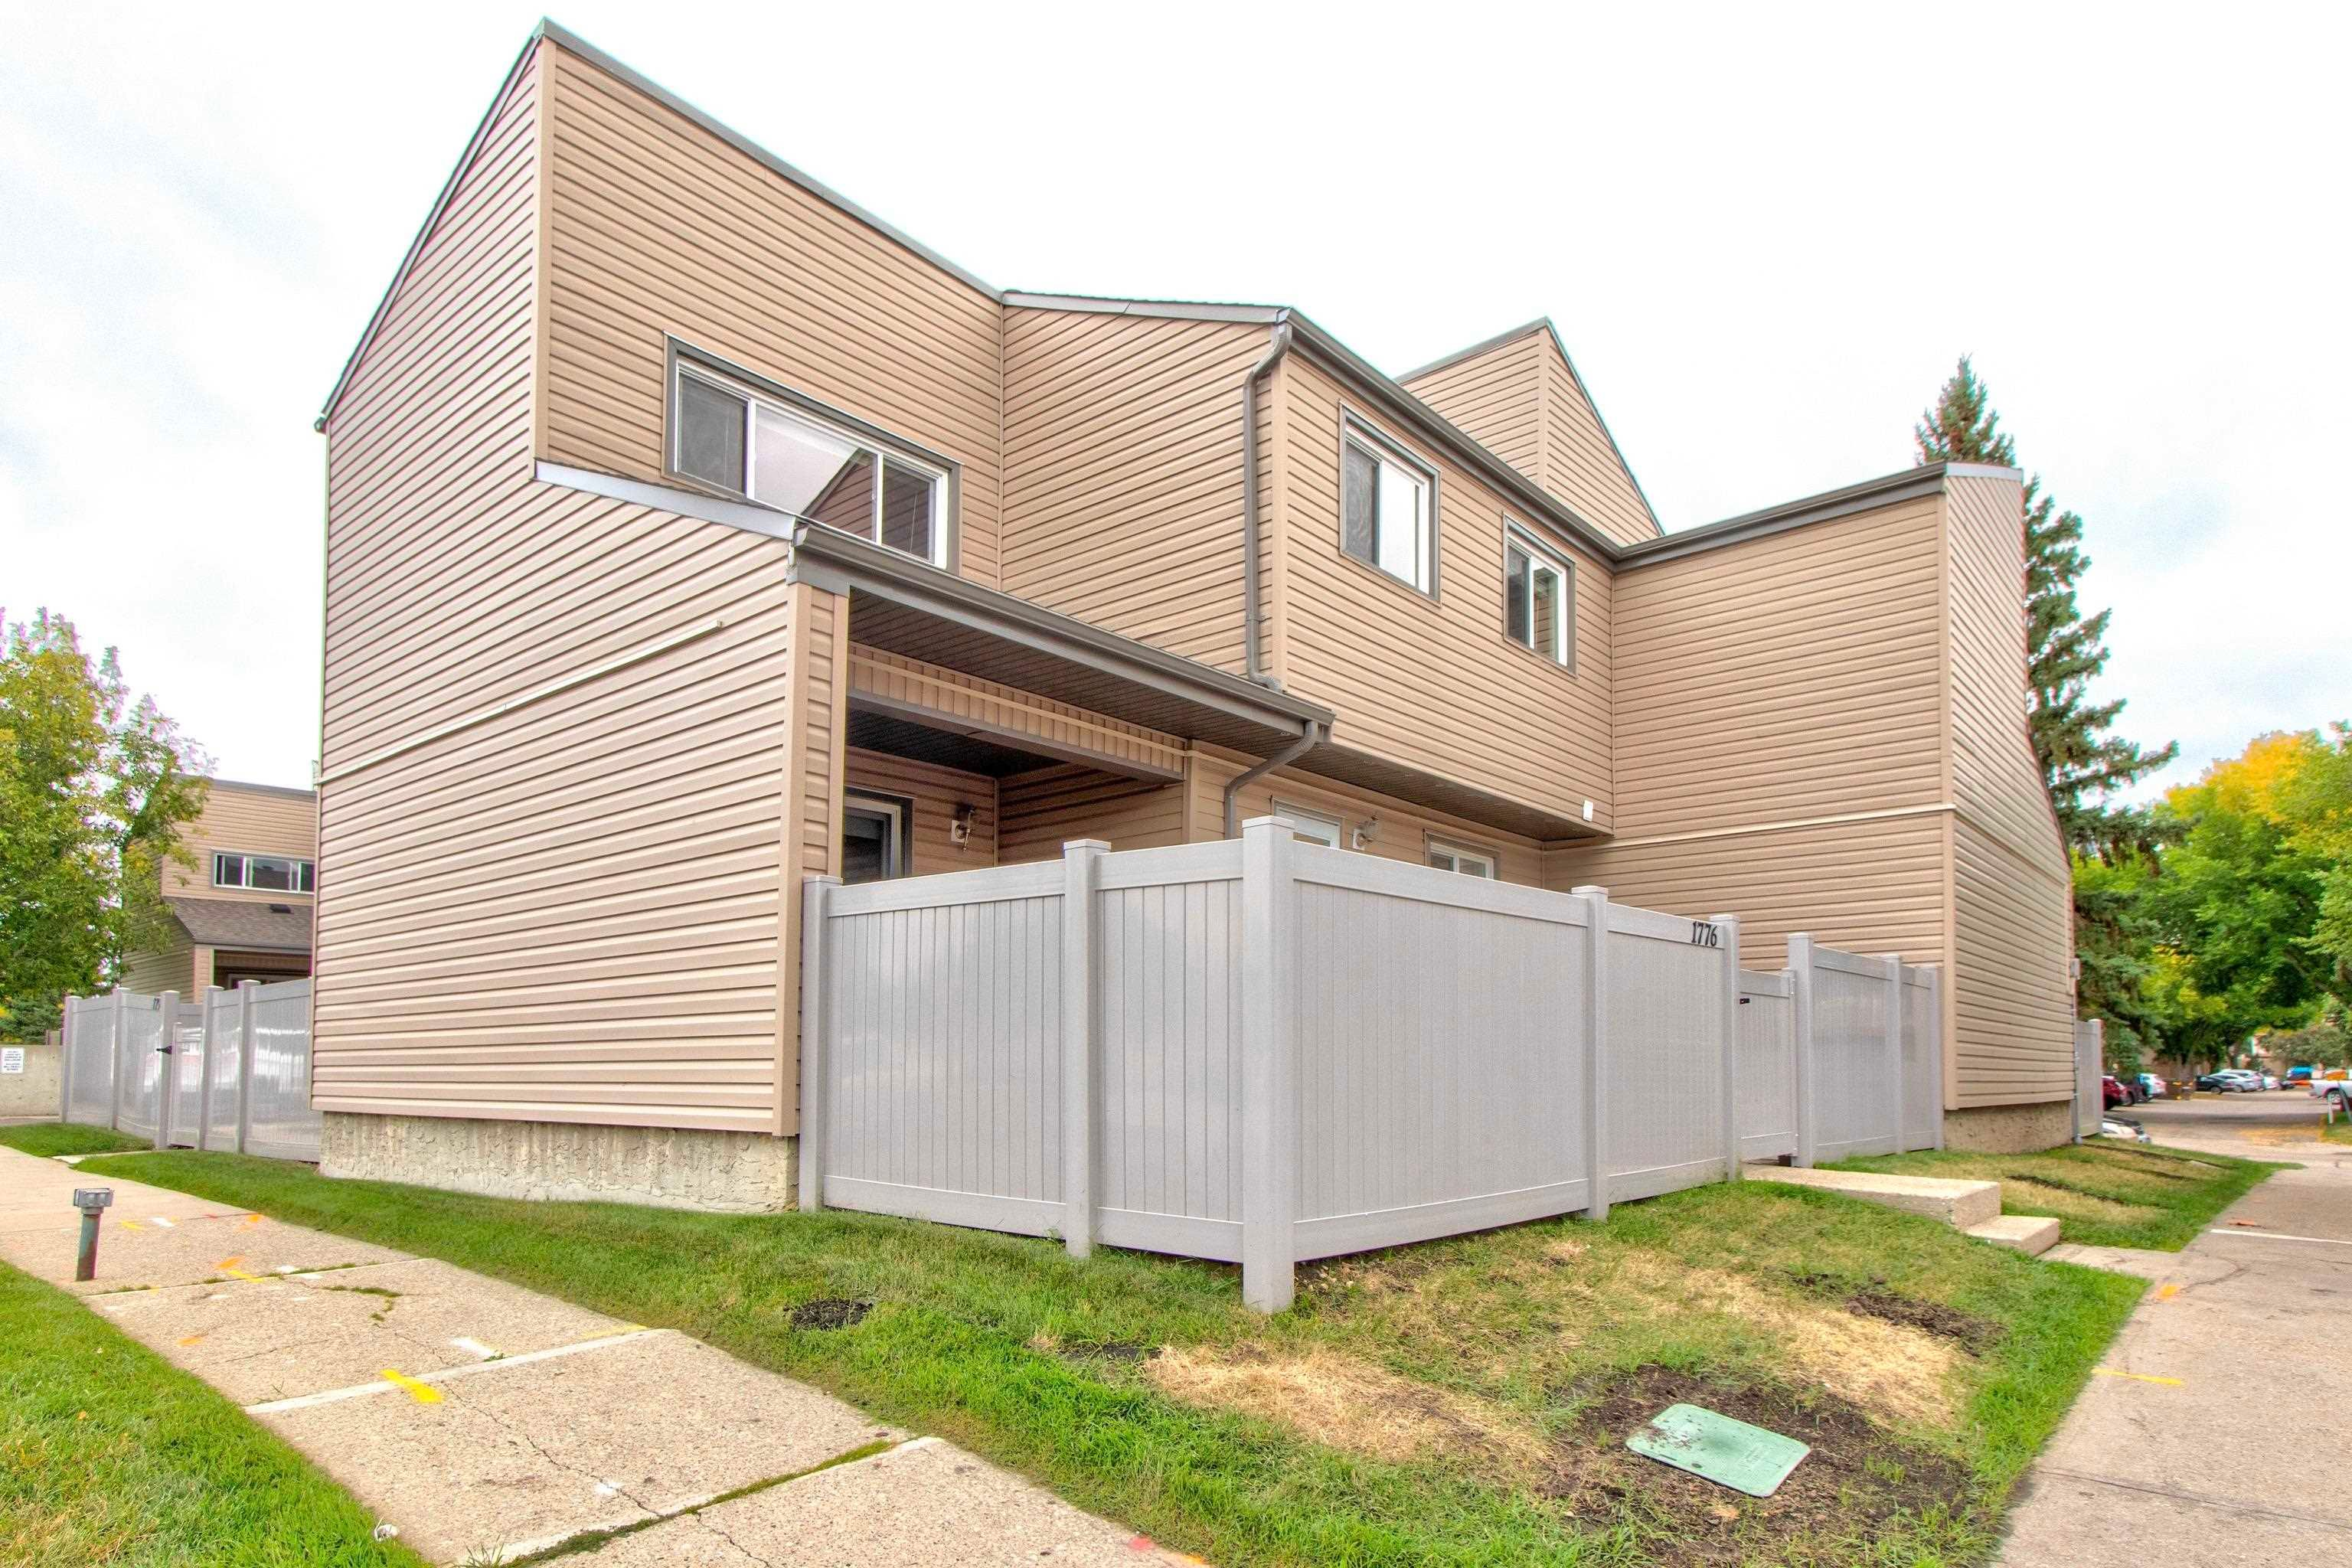 Main Photo: 1776 LAKEWOOD Road S in Edmonton: Zone 29 Townhouse for sale : MLS®# E4262942